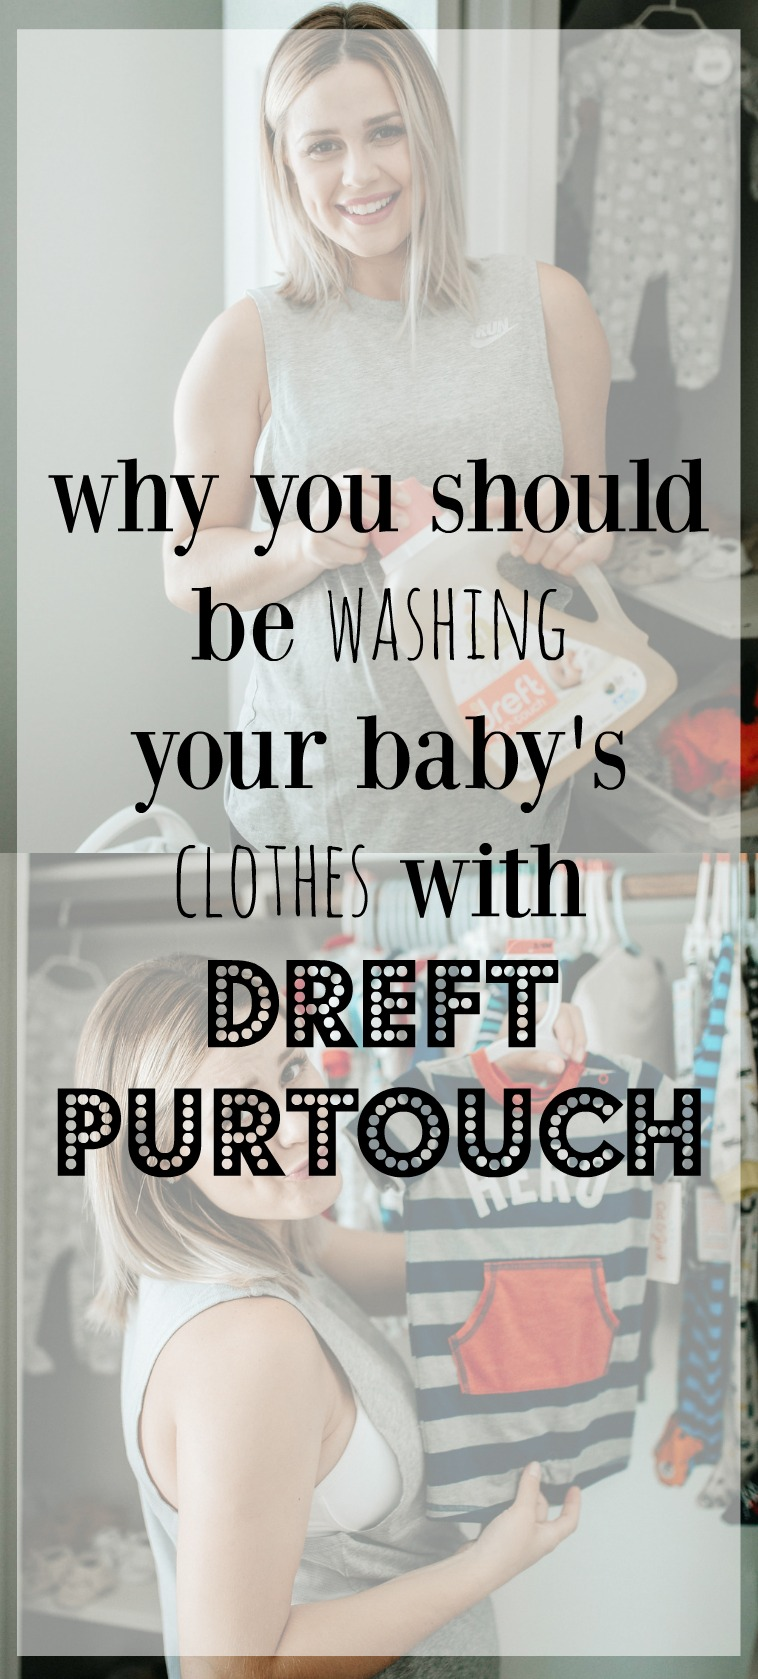 Getting ready for baby with Dreft purtouch | how to get ready for baby | Uptown with Elly Brown